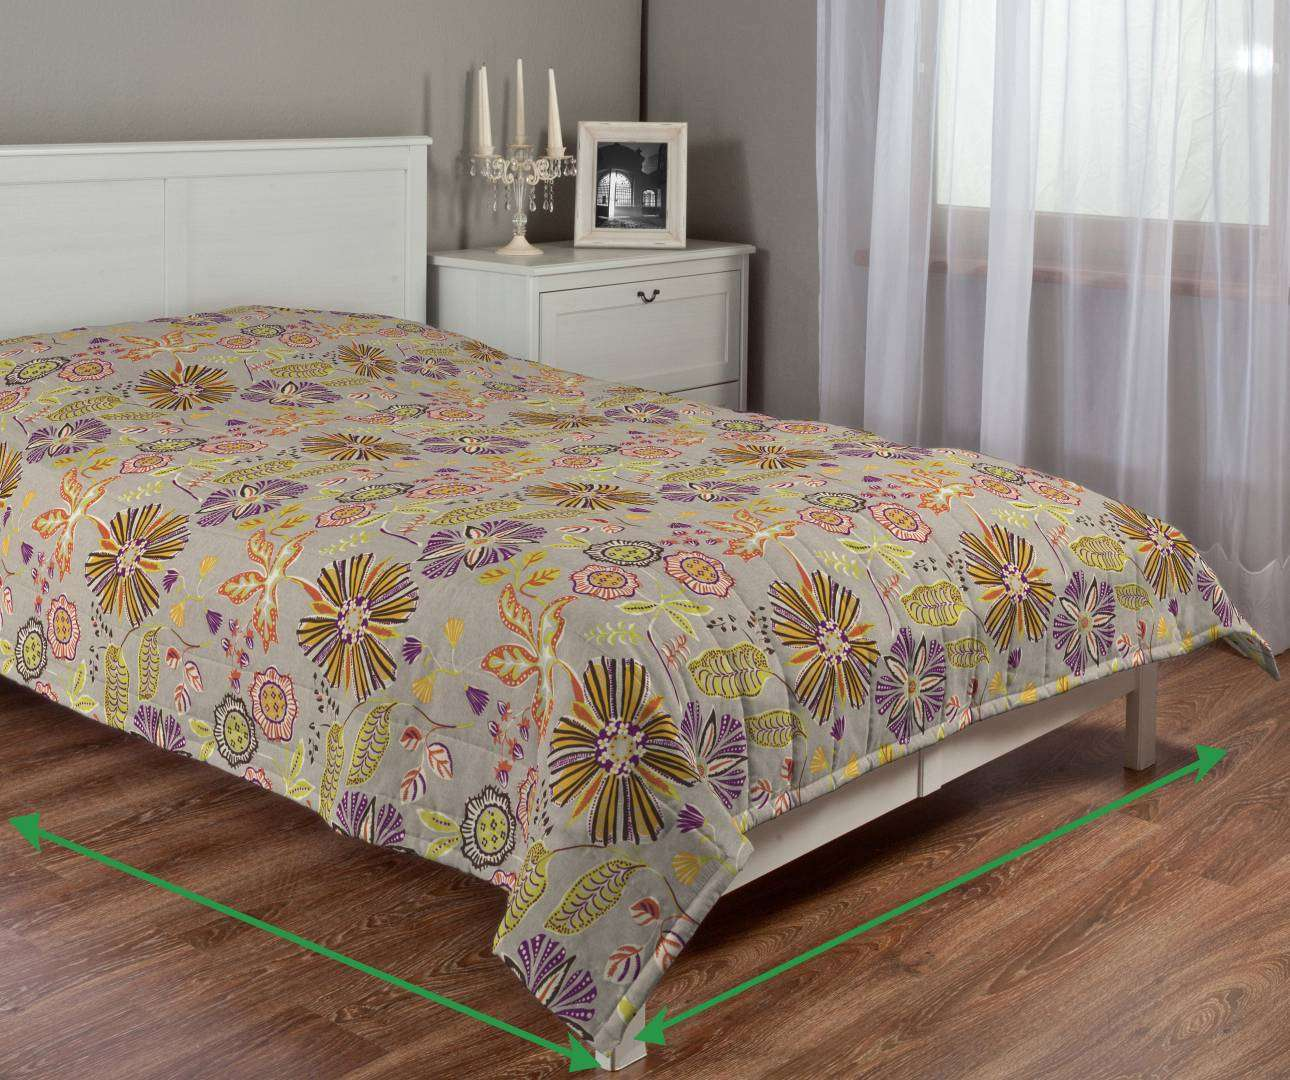 Quilted throw (vertical quilt pattern) in collection Etna, fabric: 705-11